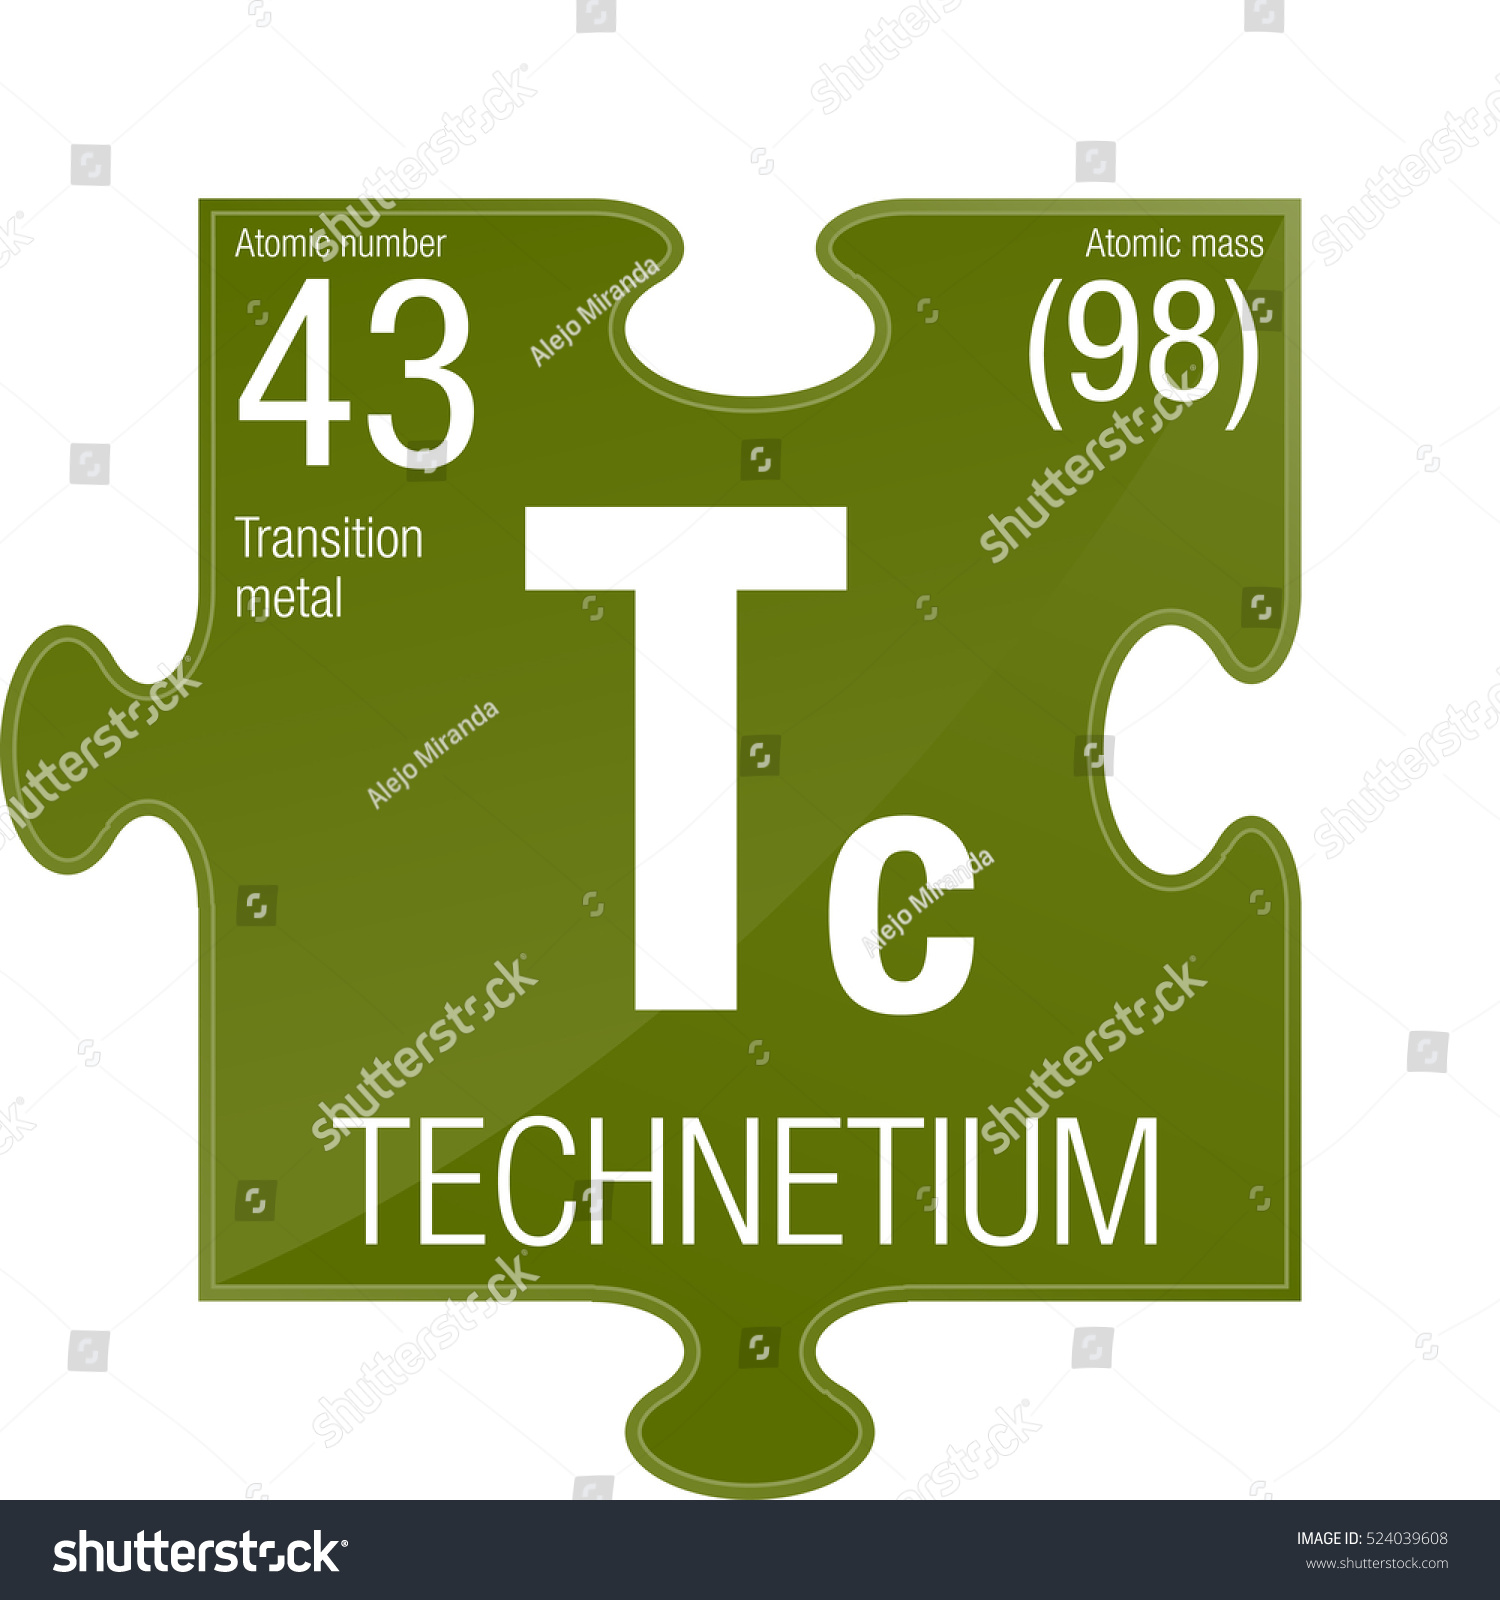 Technetium symbol element number 43 periodic stock vector technetium symbol element number 43 of the periodic table of the elements chemistry gamestrikefo Image collections